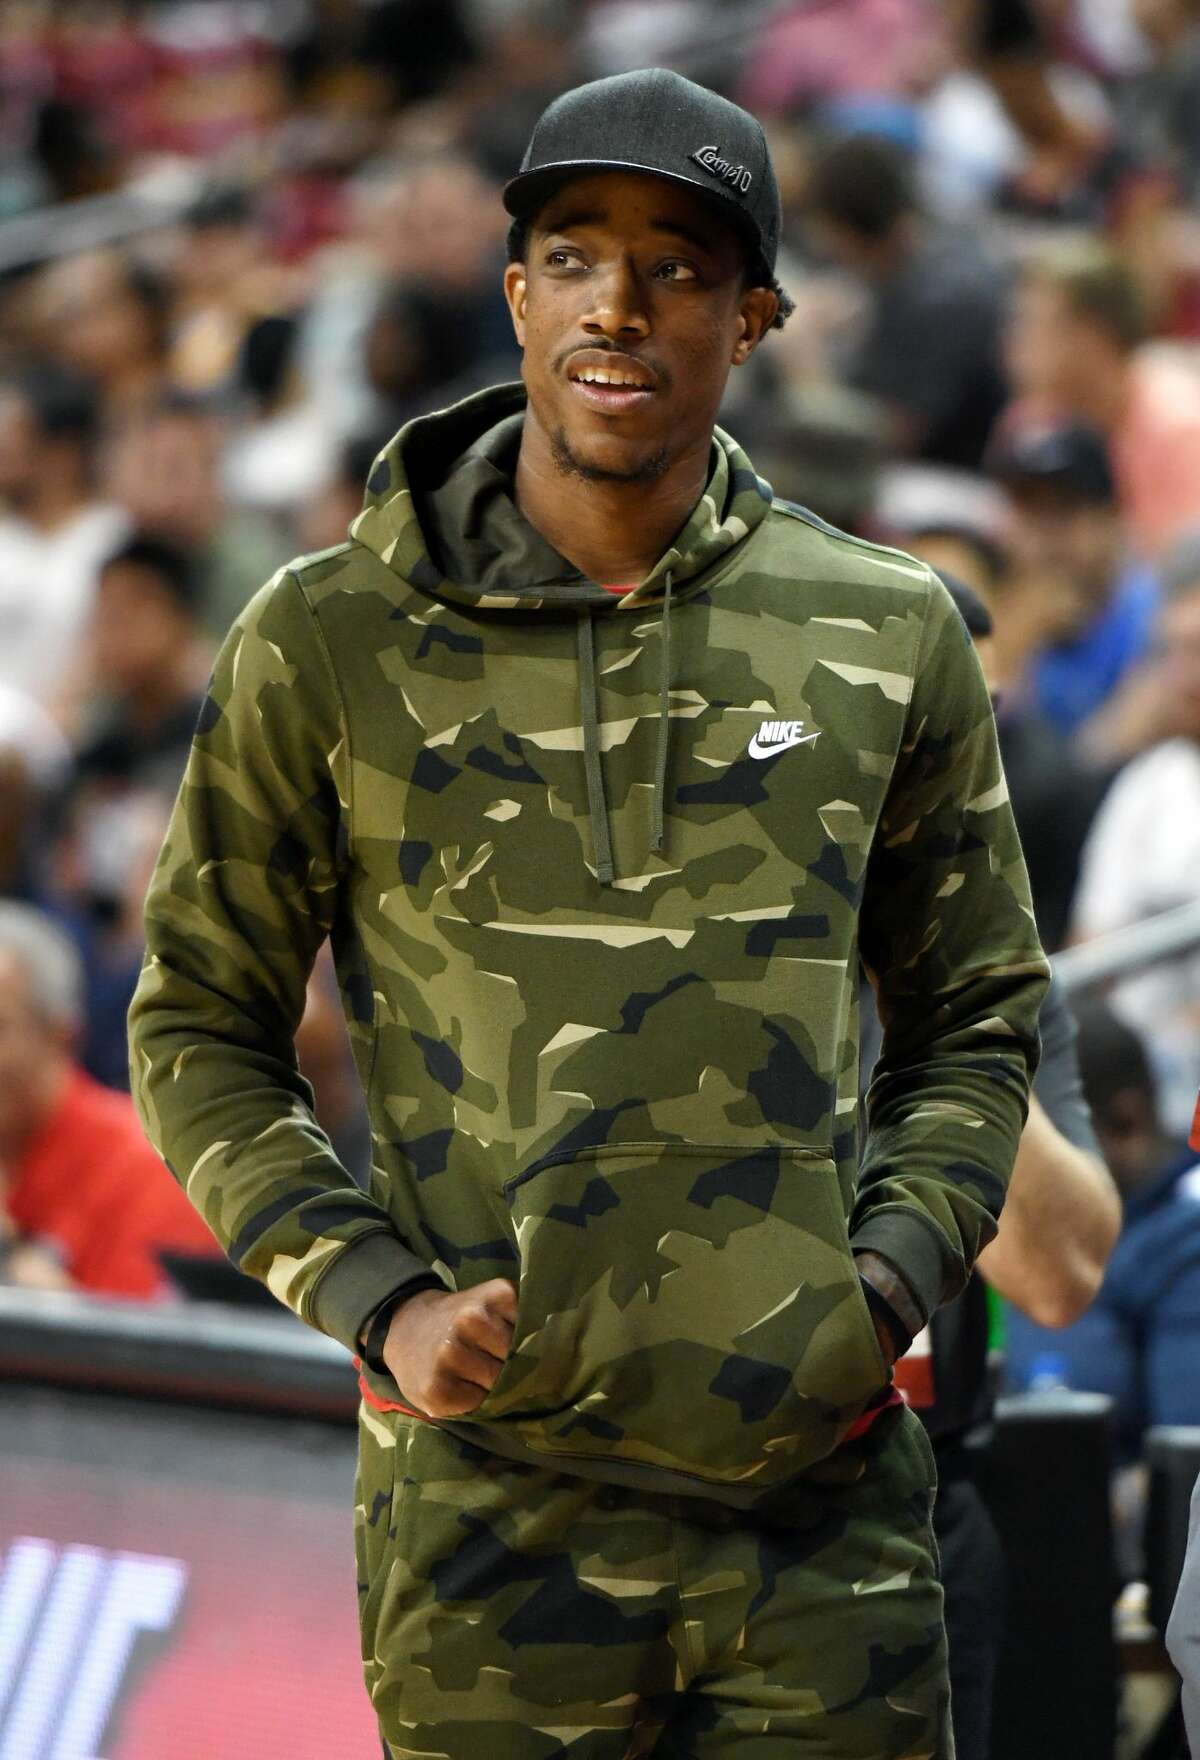 DeMar DeRozan of the Toronto Raptors attends a 2018 NBA Summer League game between the Raptors and the New Orleans Pelicans at the Thomas & Mack Center on July 6, 2018 in Las Vegas, Nevada.